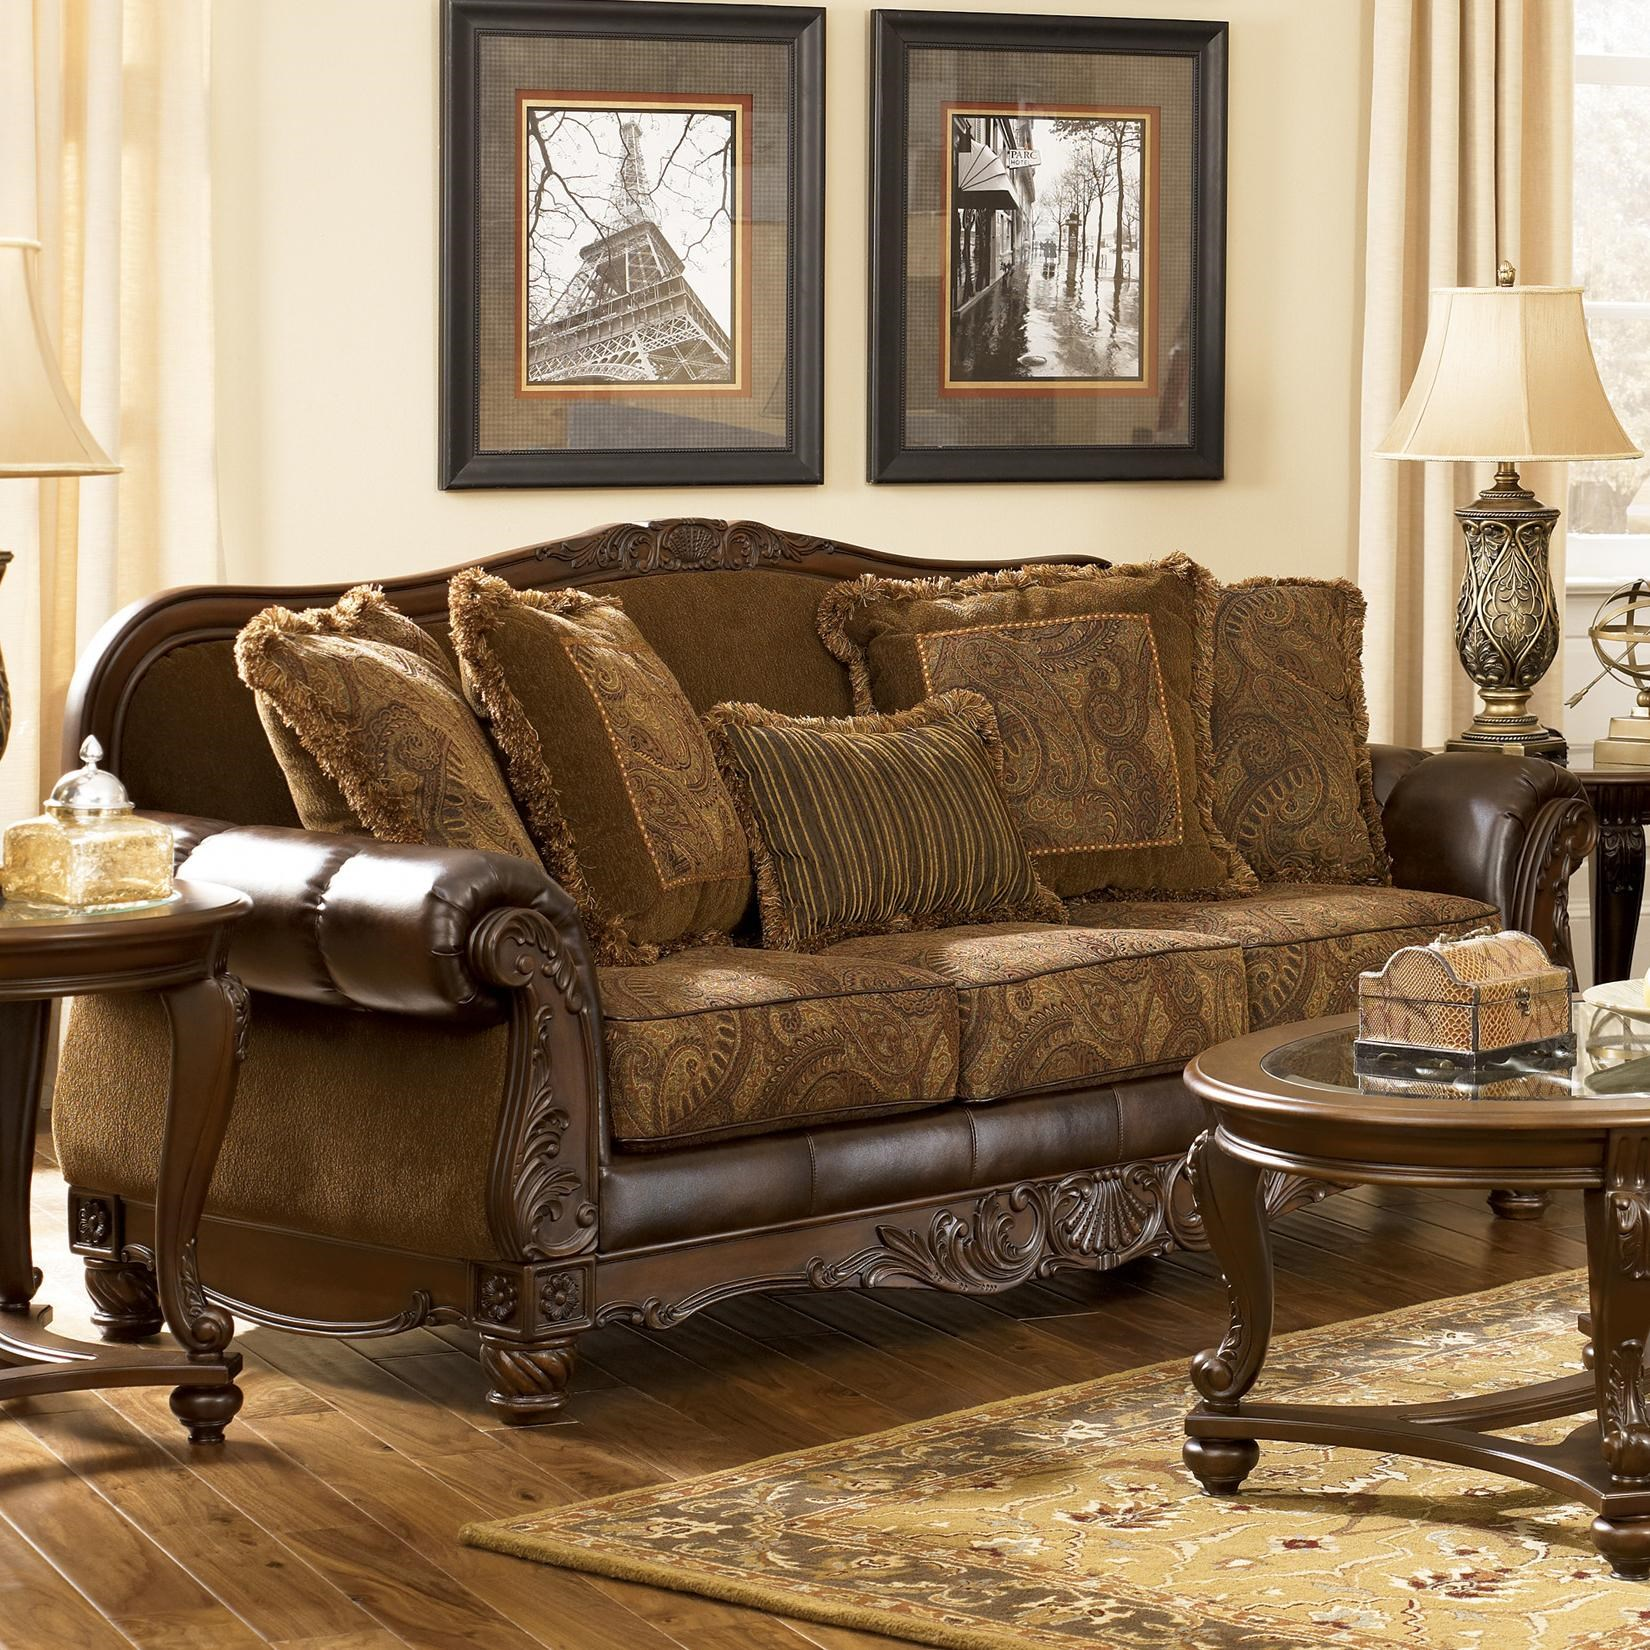 Signature Design By Ashley Fresco DuraBlend   Antique Traditional  Stationary Sofa With Rolled Arms   Royal Furniture   Sofa